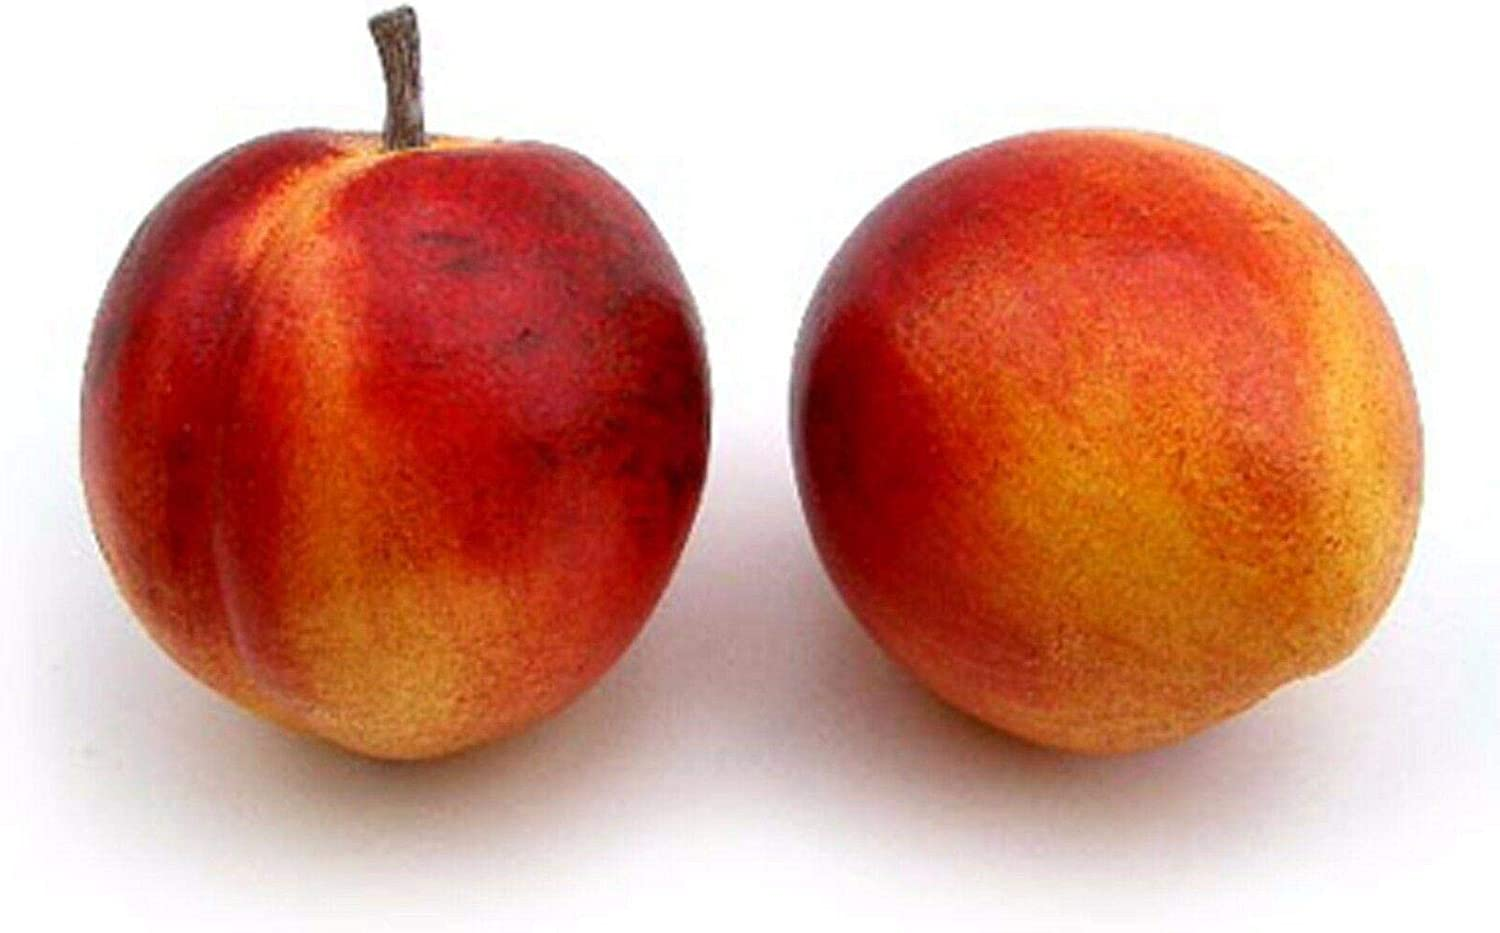 Artificial Industry No. 1 Nectarine Bag of 24 Sizes Fruit 2 Decorative Small Tucson Mall